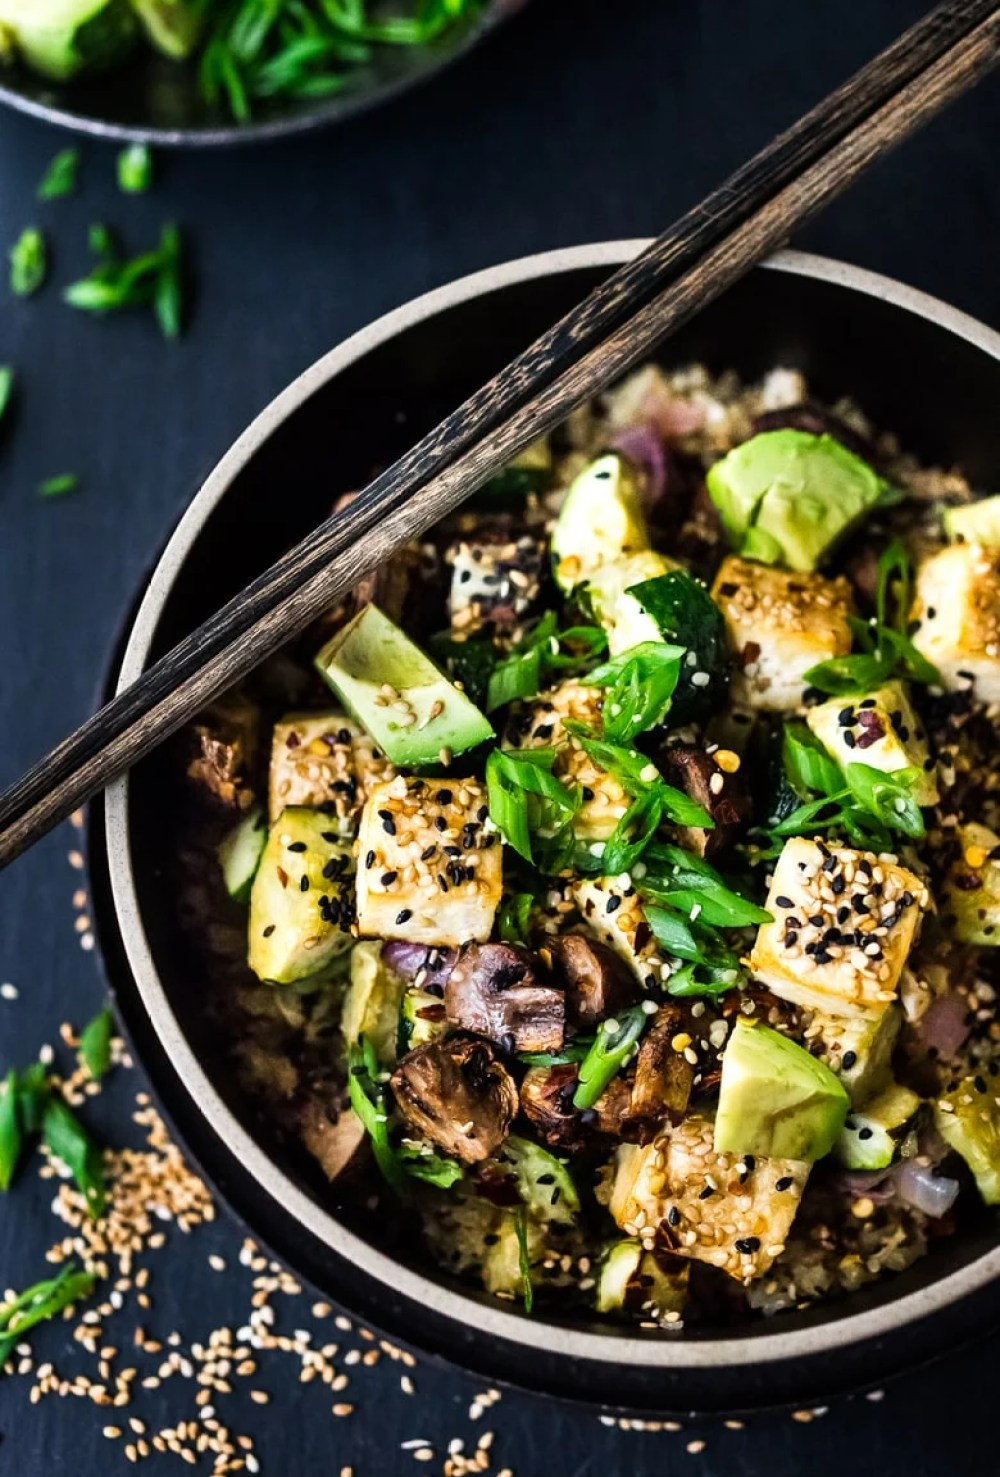 Roasted Cauliflower Rice Bowl with Miso and Veggies